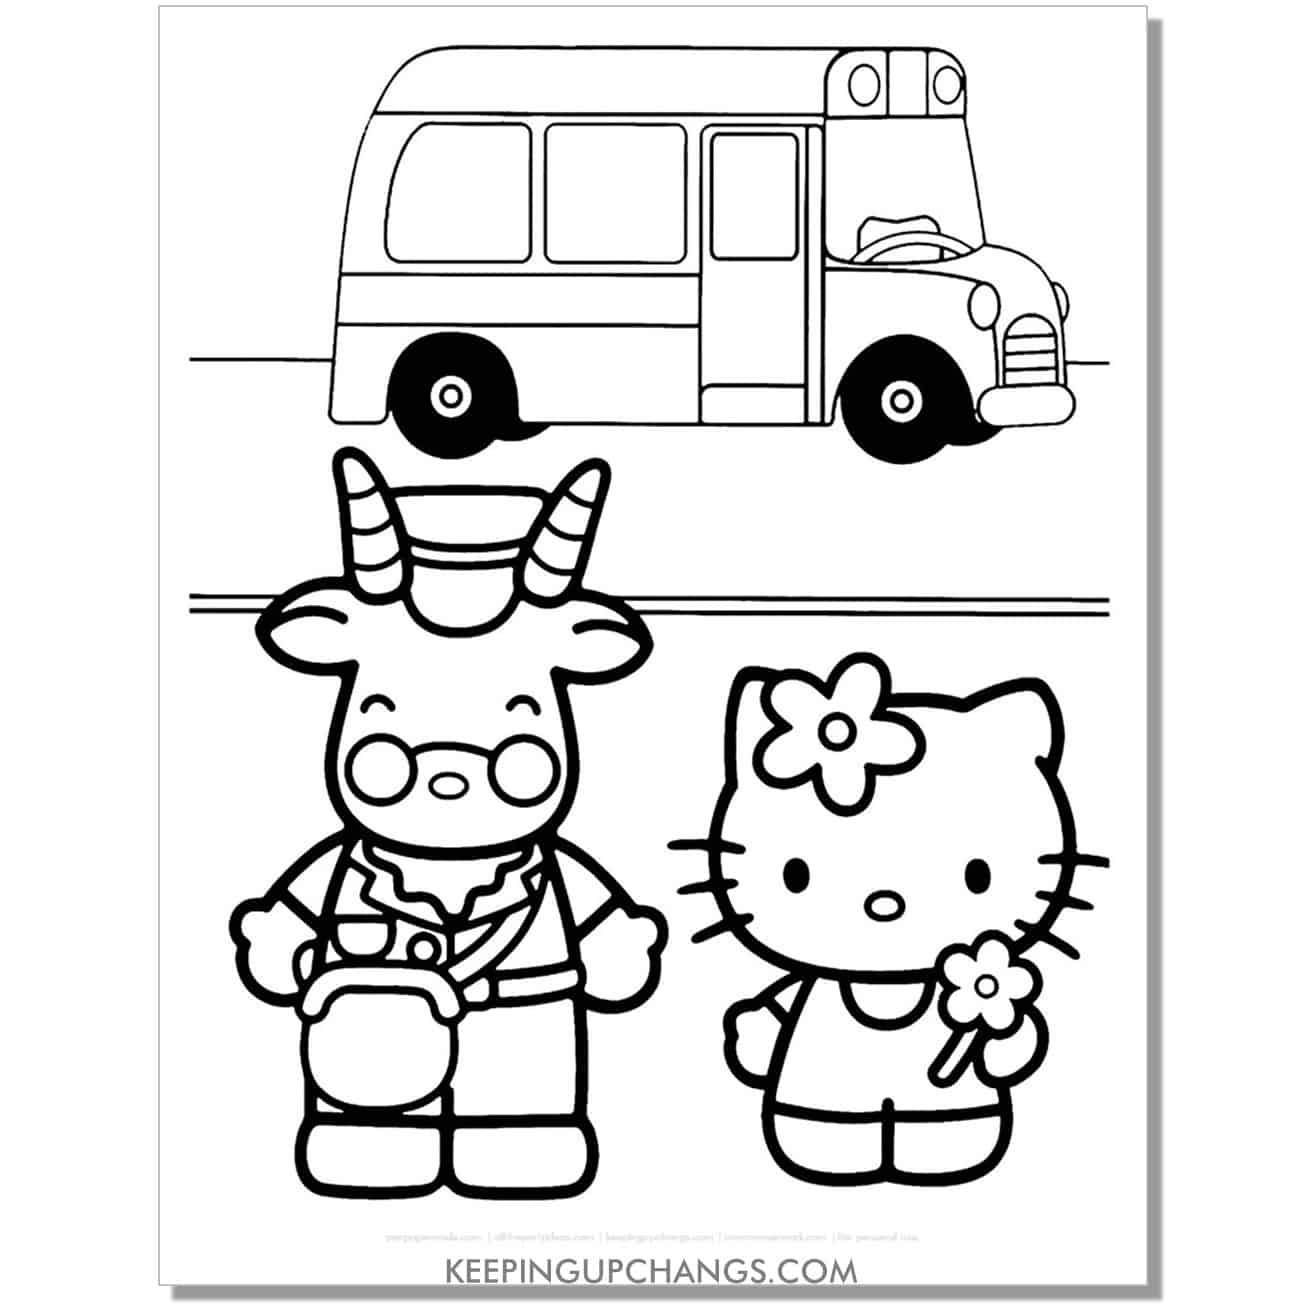 school bus hello kitty coloring page.